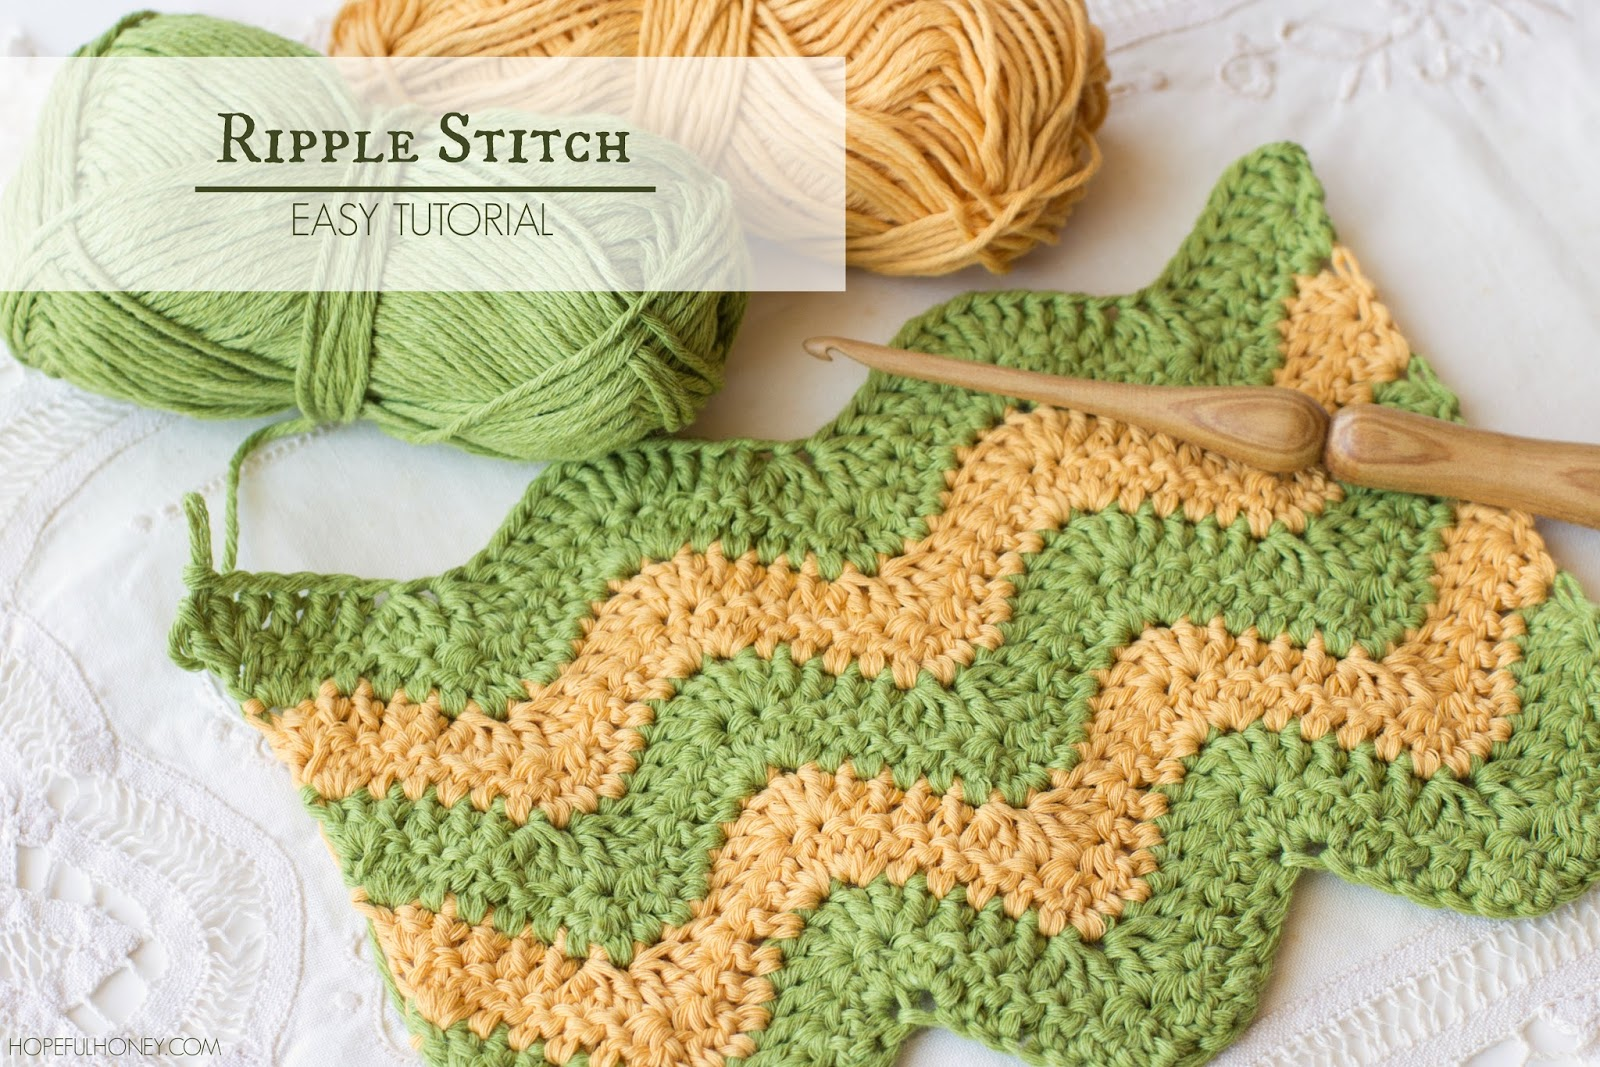 Crochet Stitches Tutorial : ... , Create: How To: Crochet The Ripple (Chevron) Stitch - Easy Tutorial